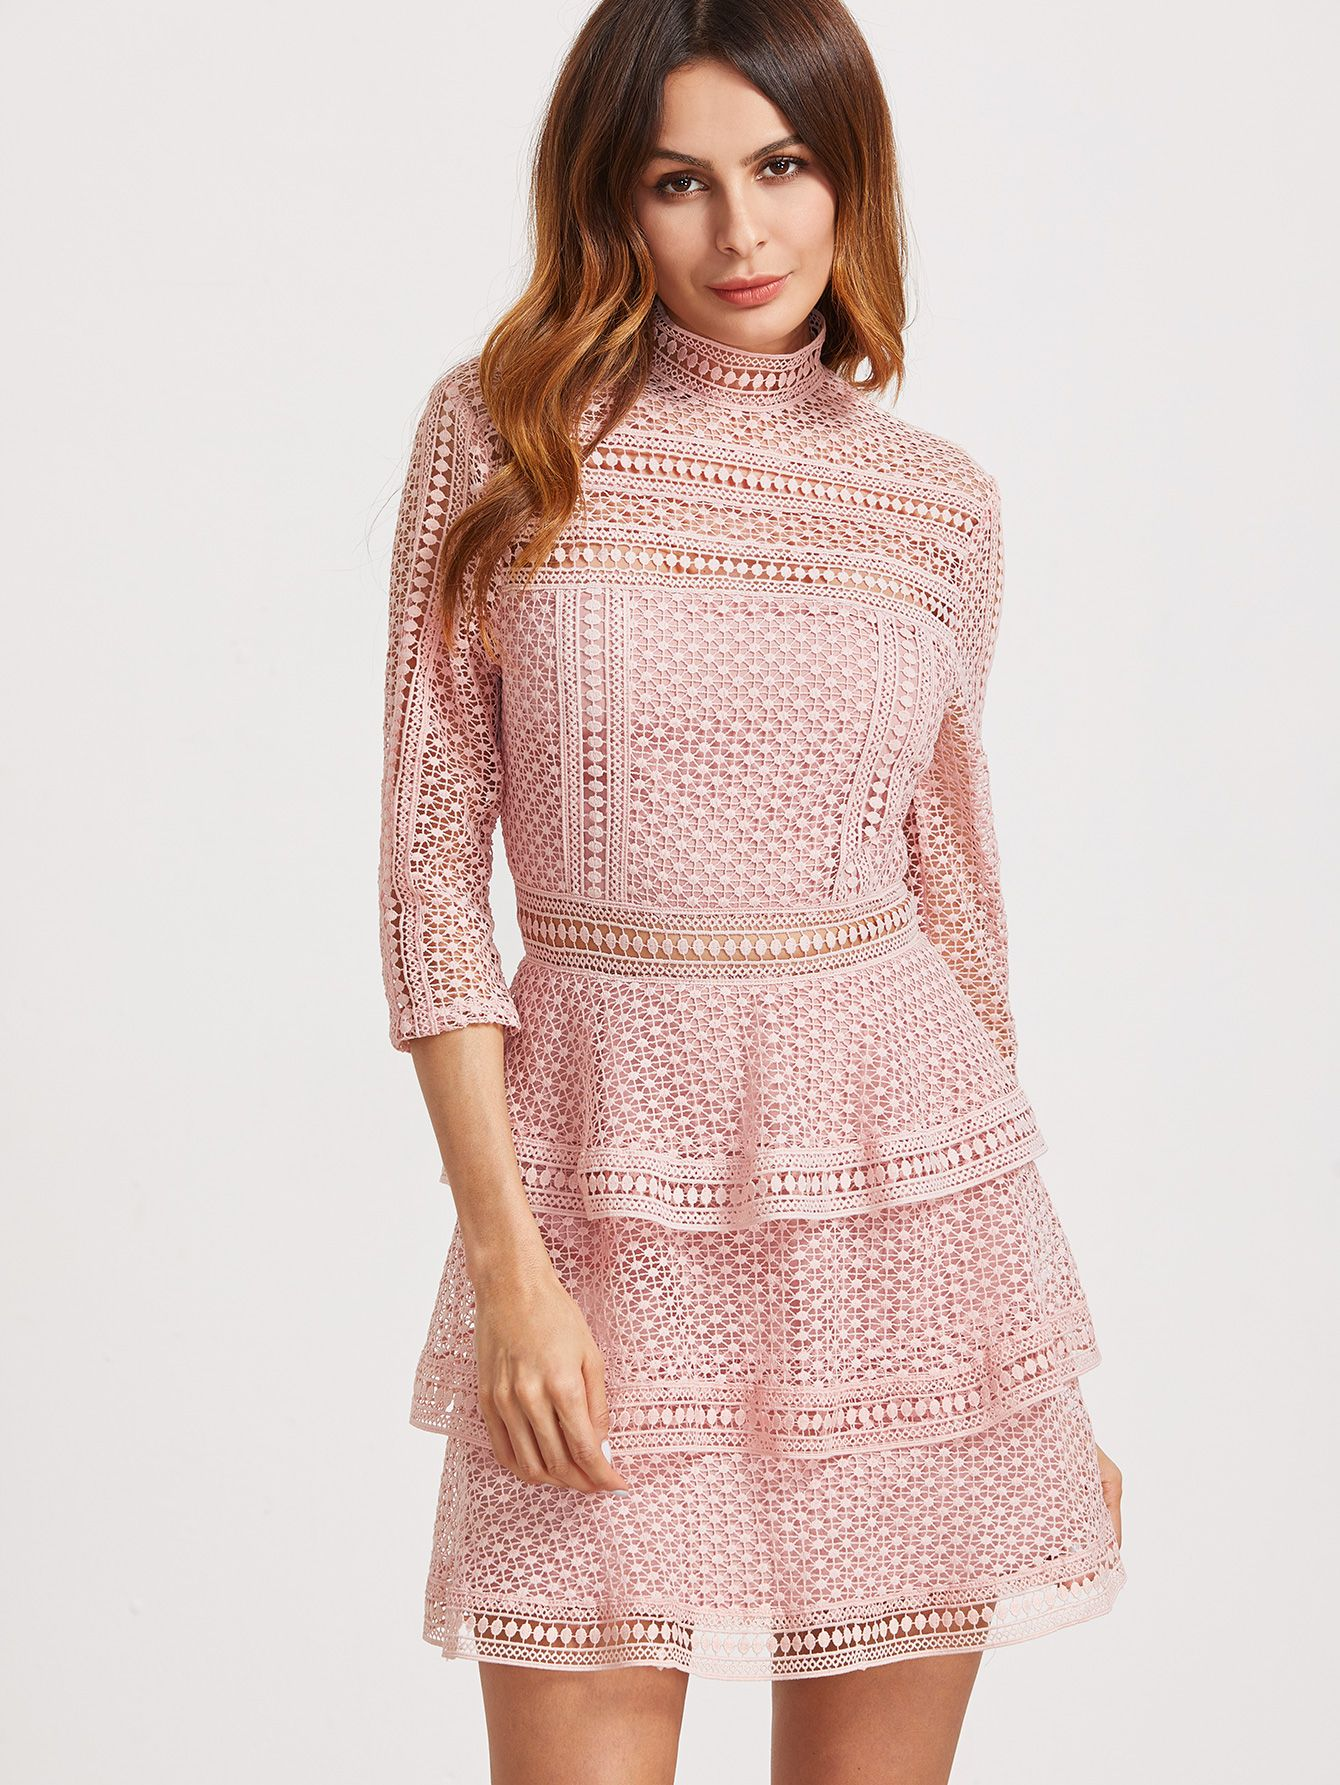 dfc0f5ff5c Shop Pink High Neck 3/4 Sleeve Layered Dotted Crochet Dress online. SheIn  offers Pink High Neck 3/4 Sleeve Layered Dotted Crochet Dress & more to fit  your ...